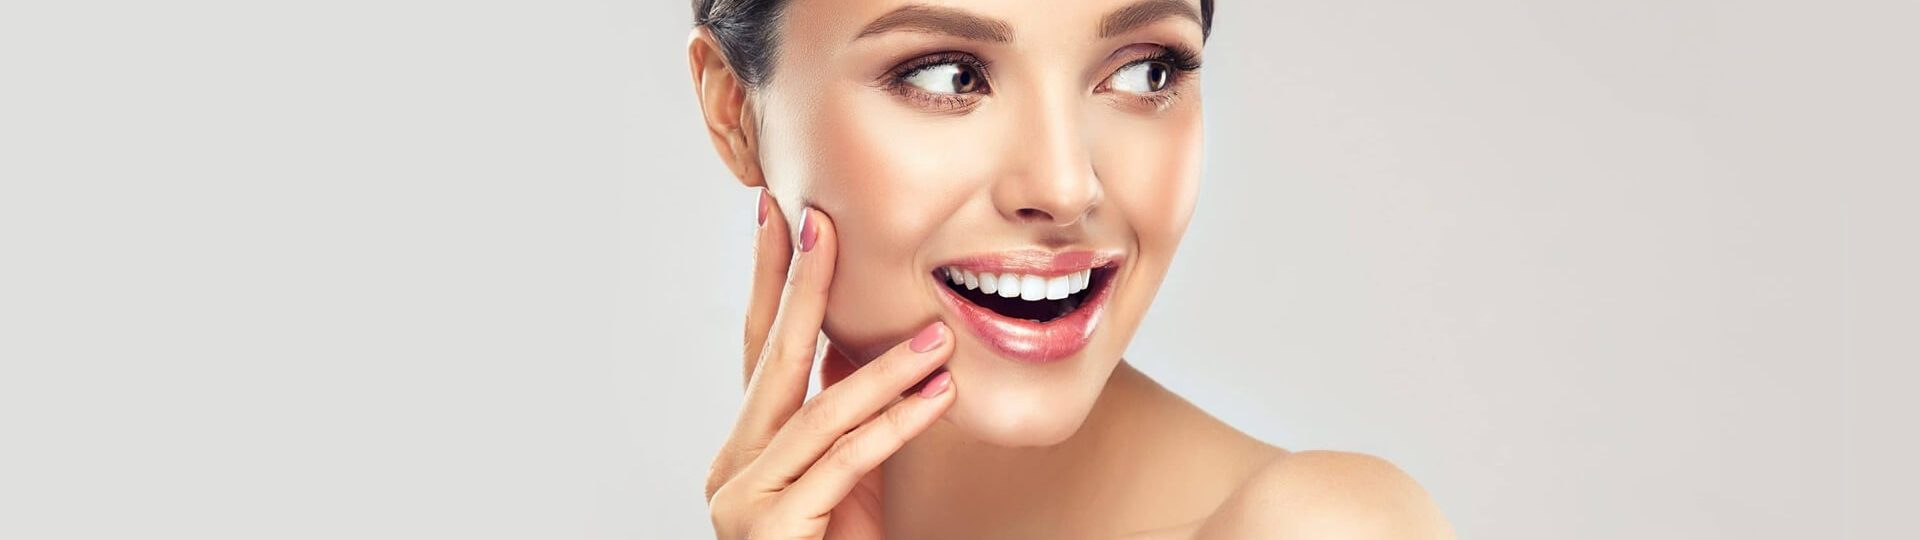 Why Choose Dermal Fillers for Your Mid-Face?